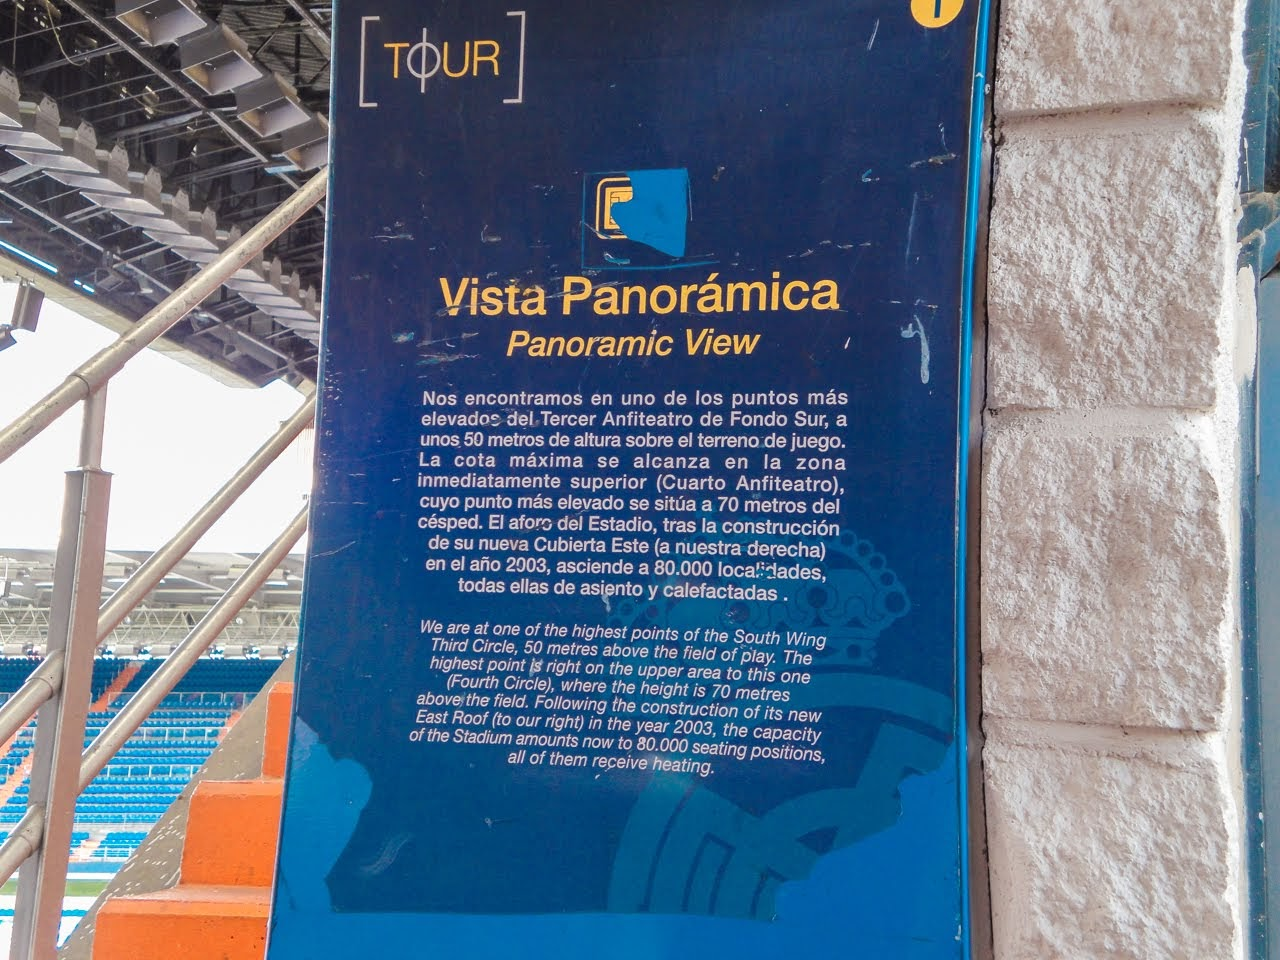 A sign for the Panoramic View